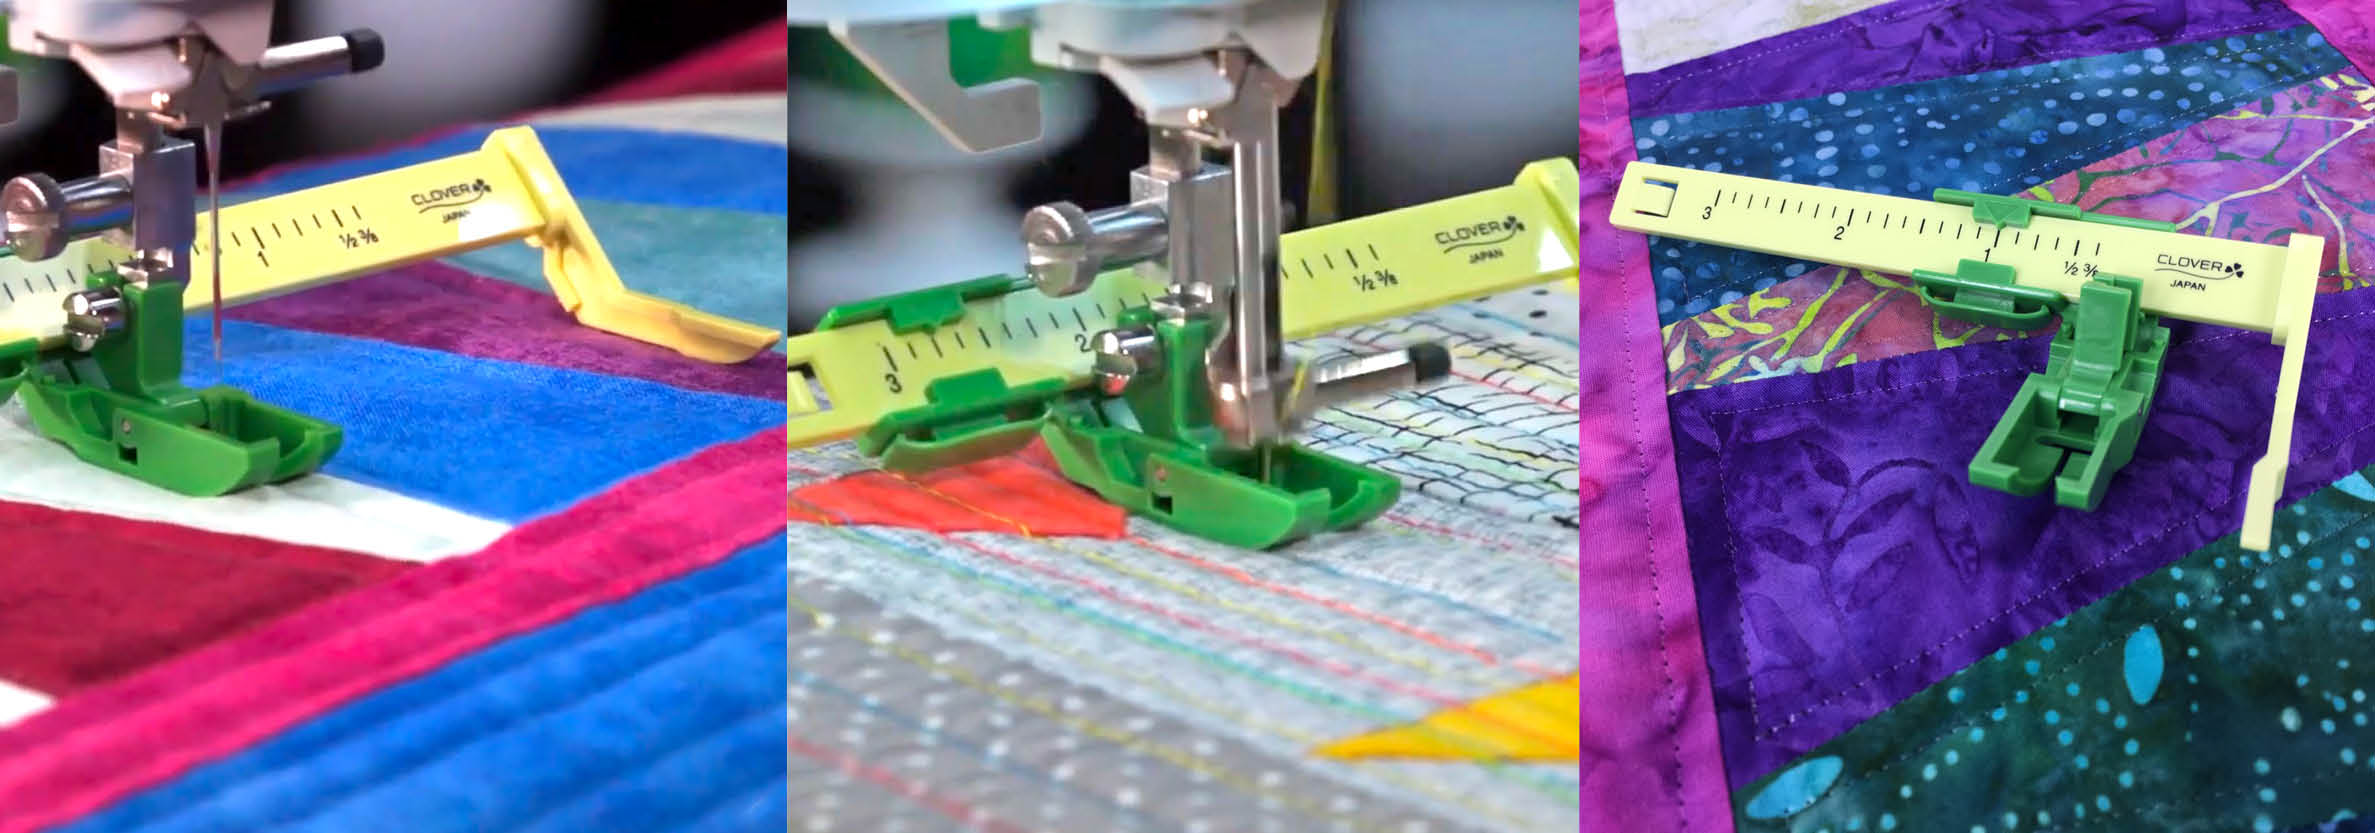 Straight Line Machine Quilting with The Ultimate Quit 'n Stitch Presser Foot as seen on Stitch it! Sisters Program 116